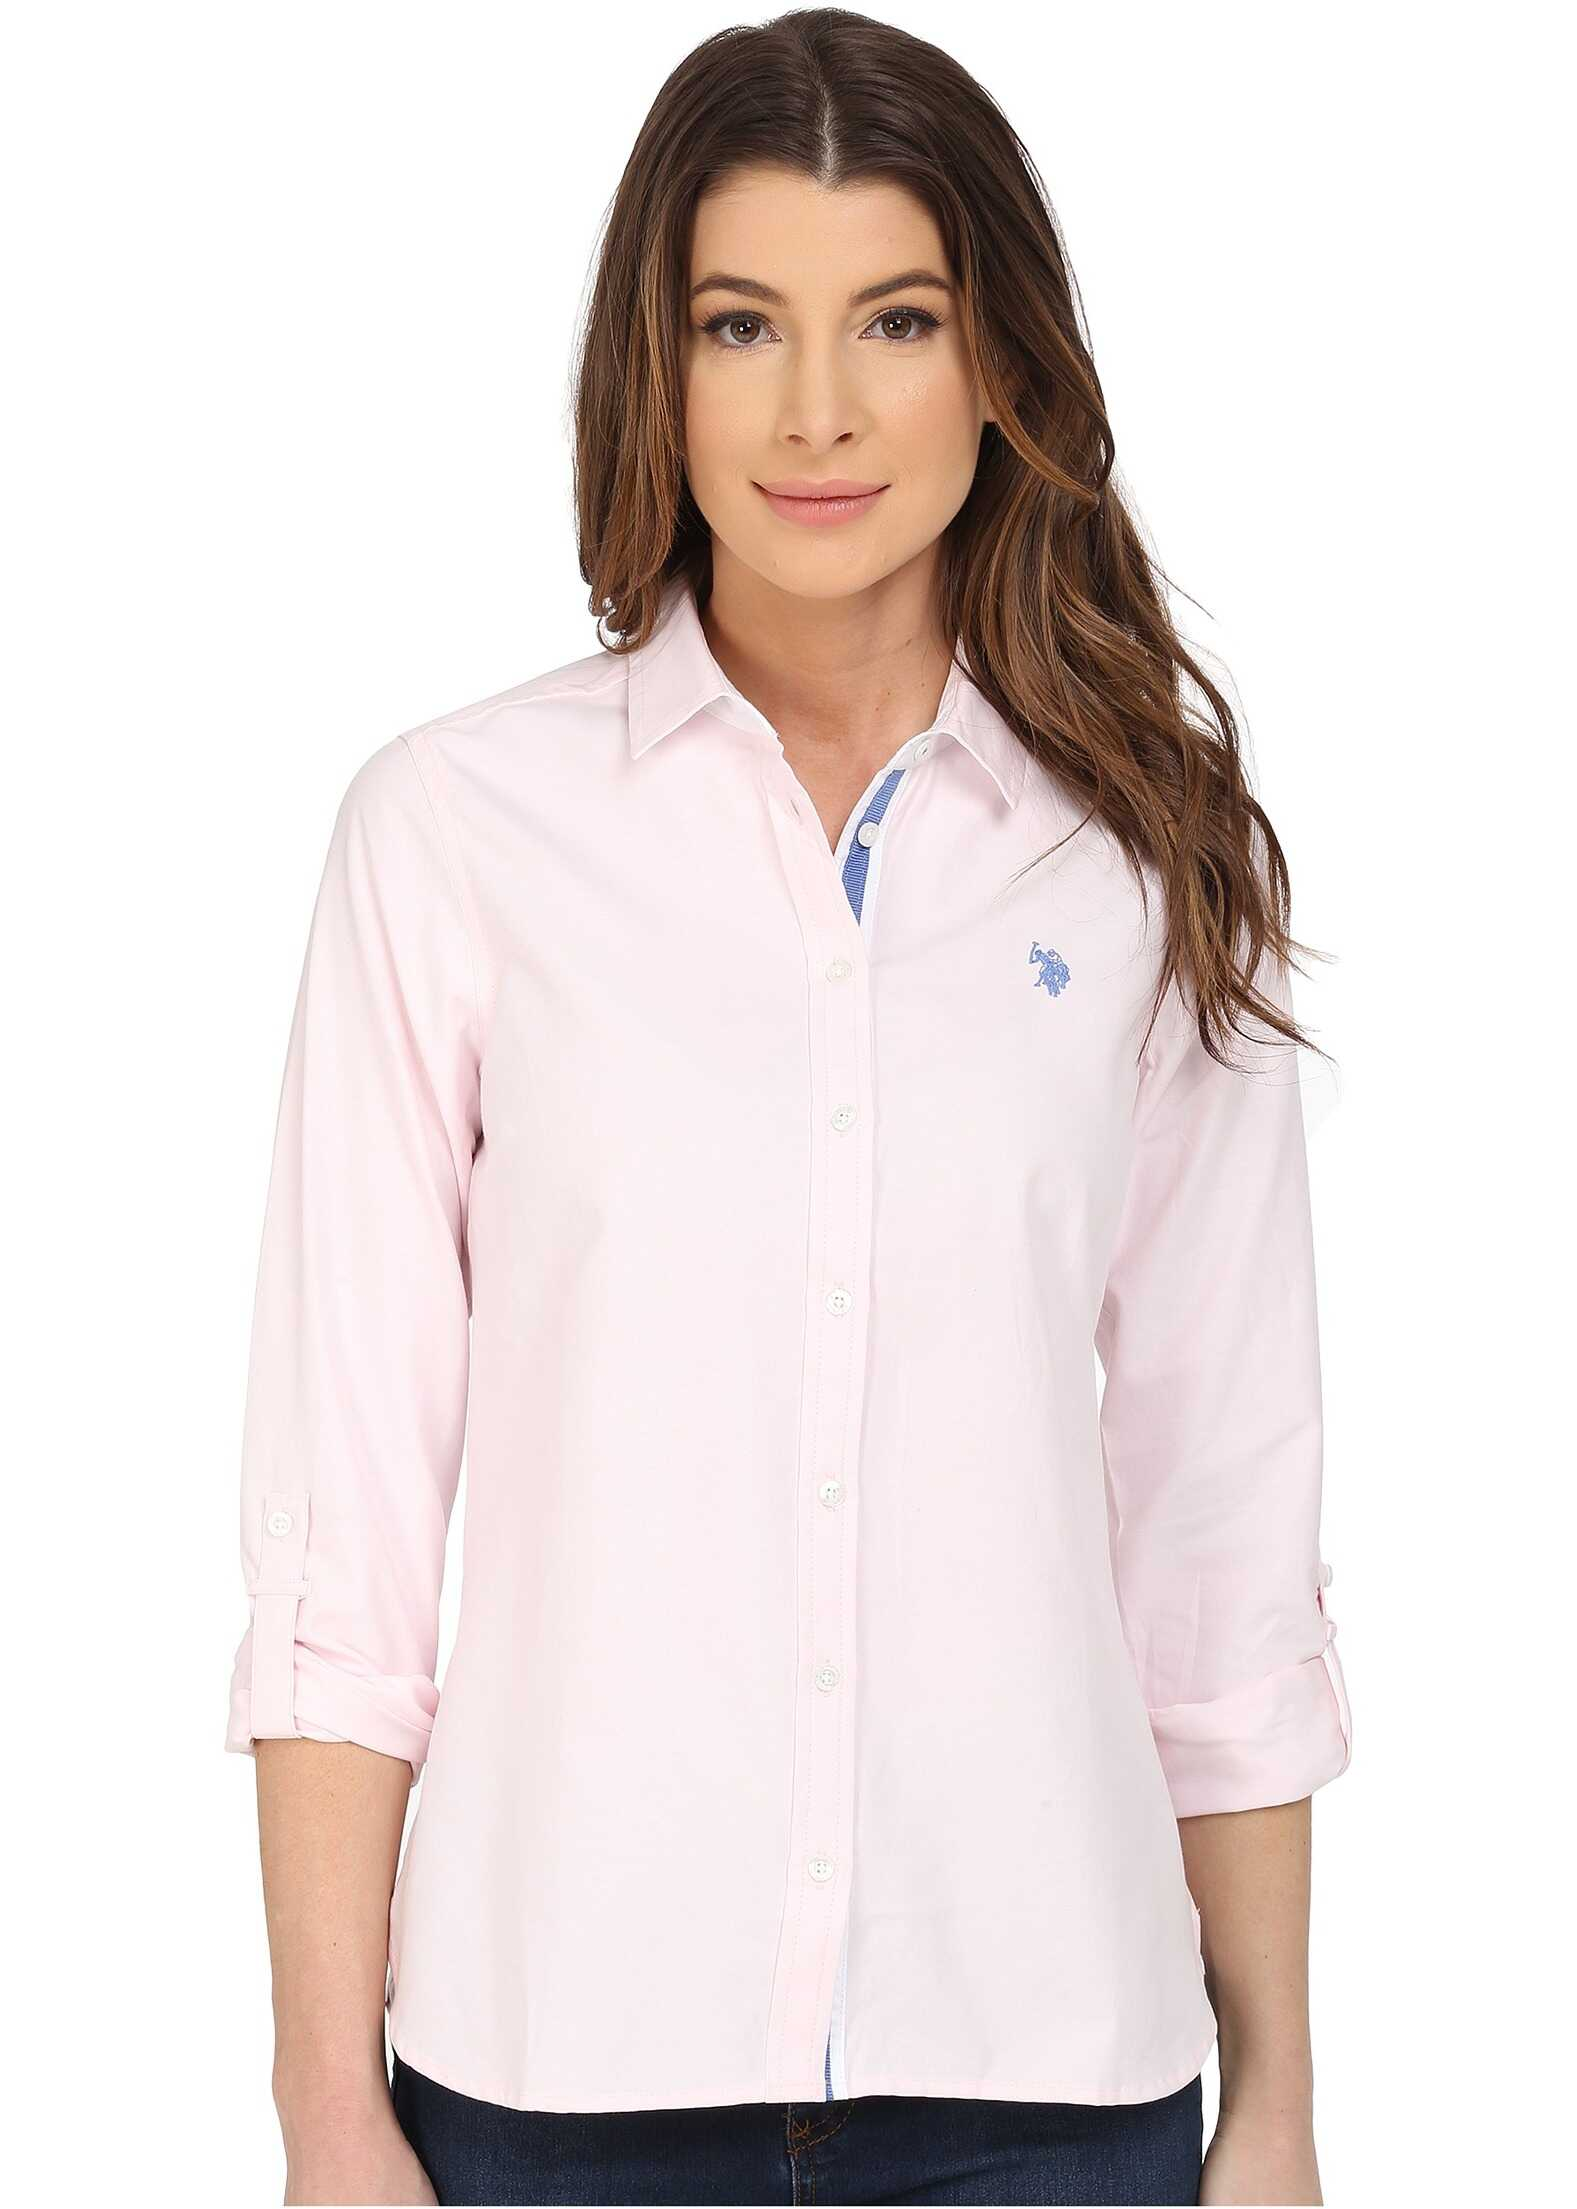 U.S. POLO ASSN. Long Sleeve Solid Oxford Shirt Classic Pink